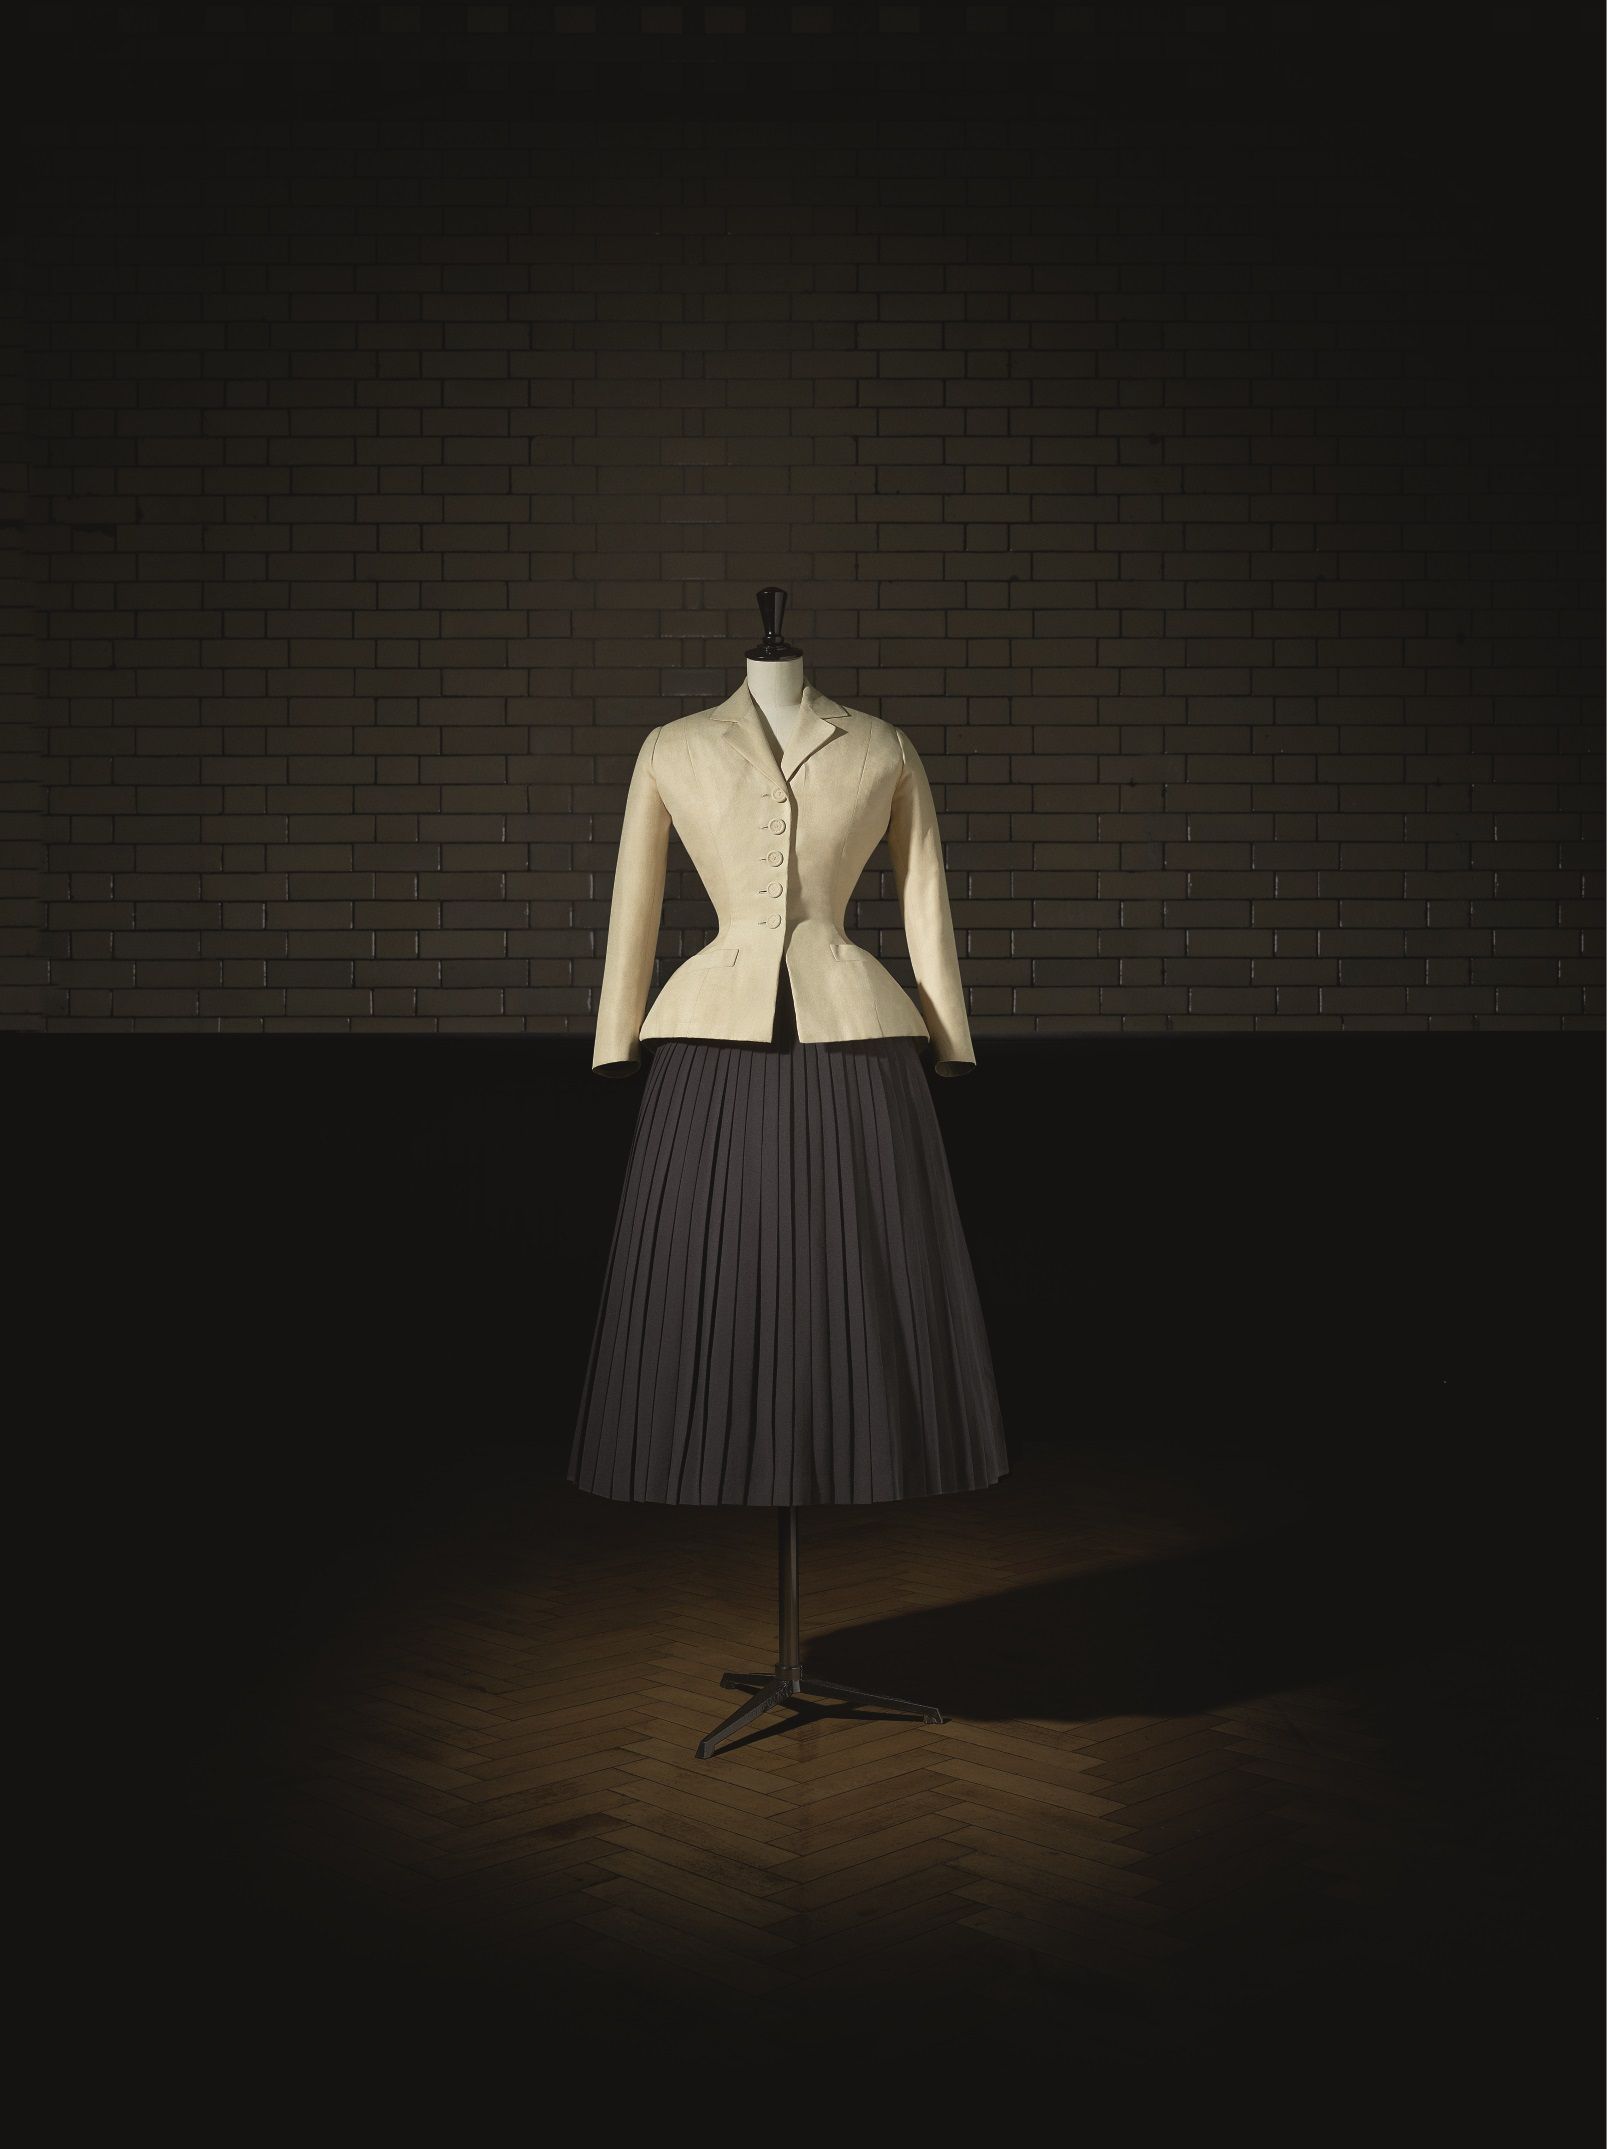 Dior's famous Bar Suit from the 1947 collection